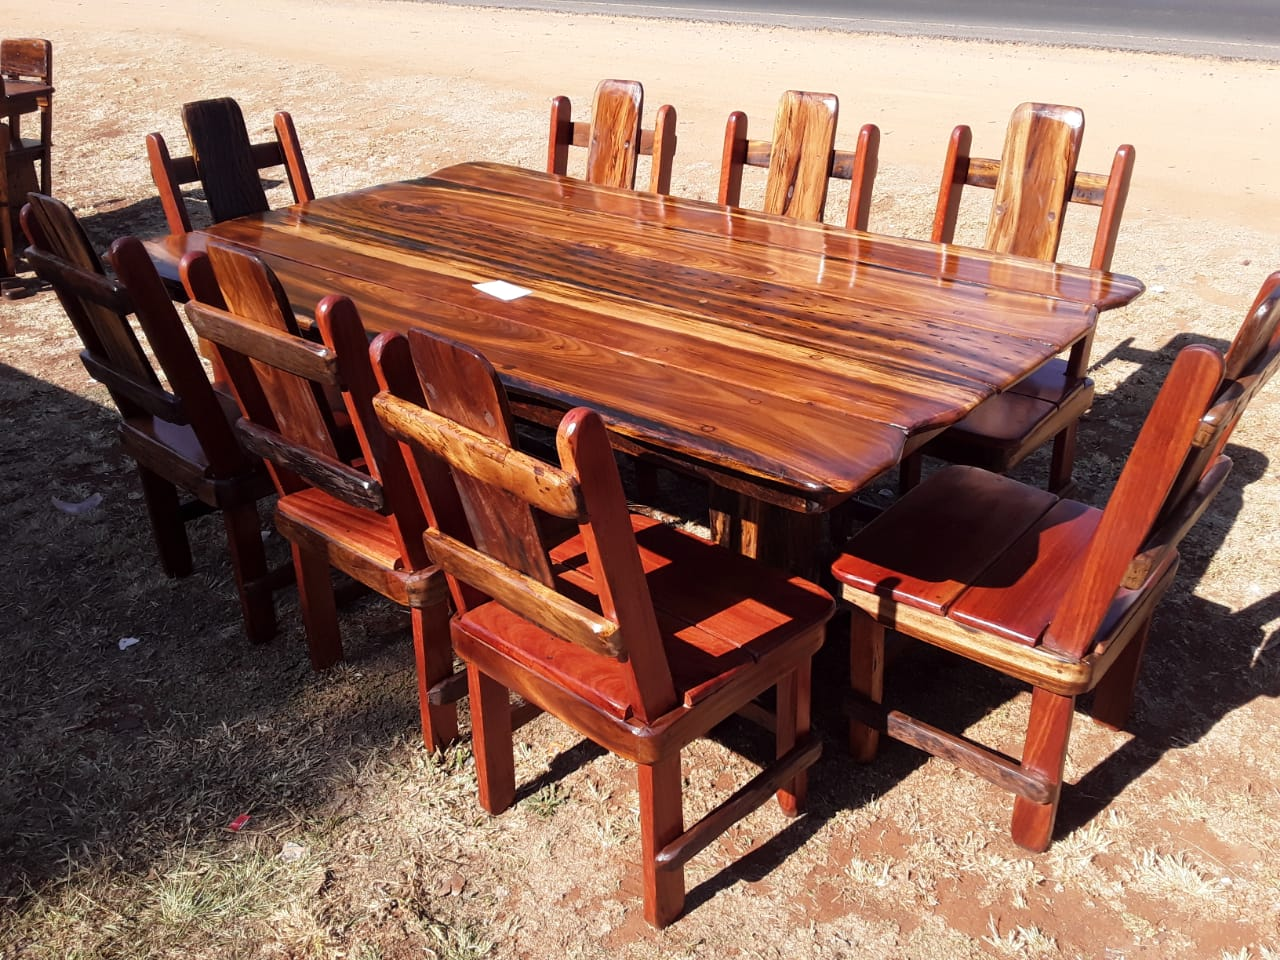 Sleeper Dining room table 2000×1200 with 8 chairs